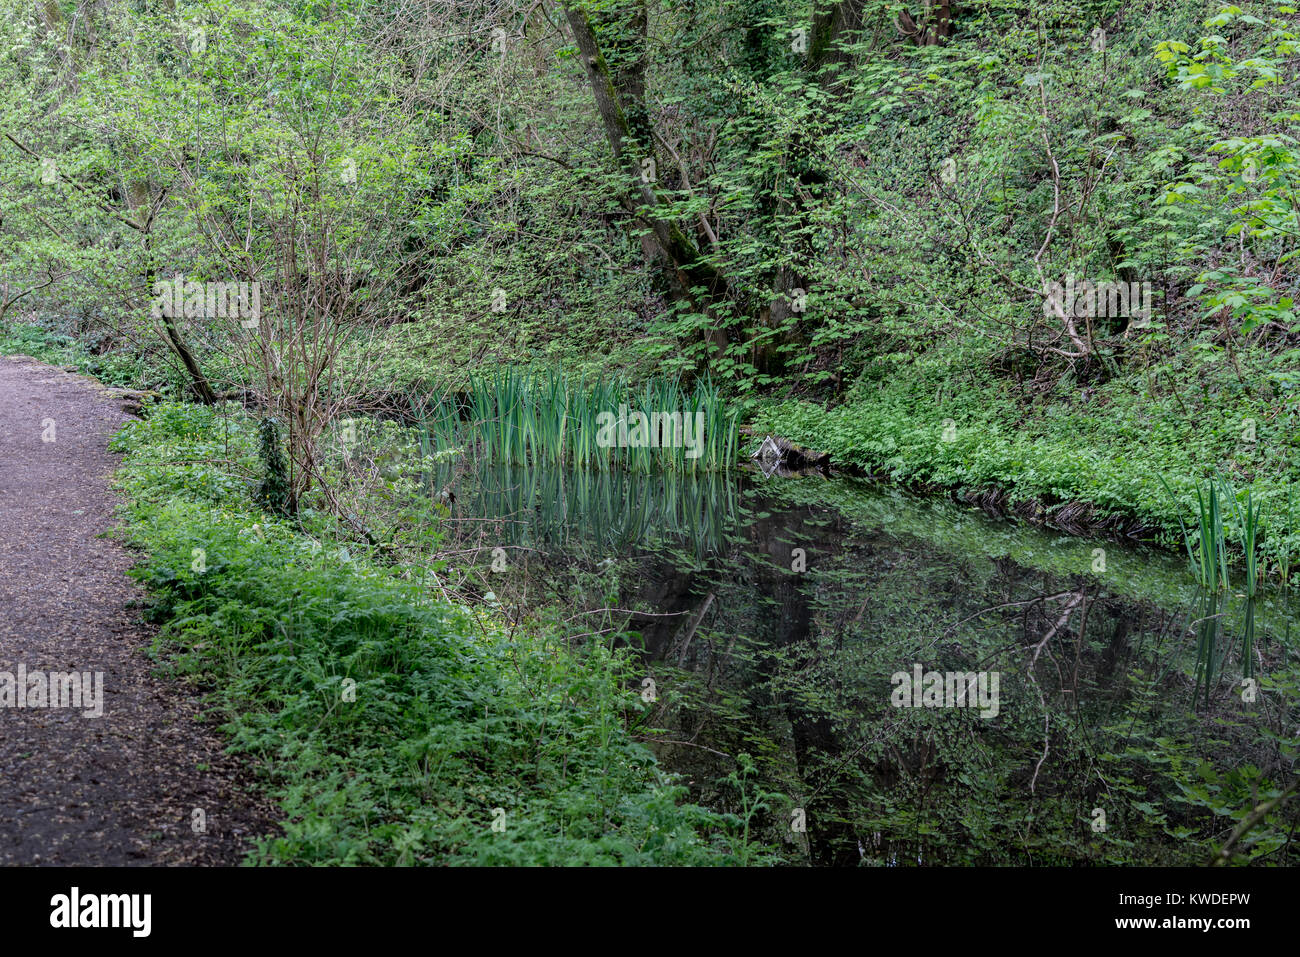 Towpath along the disused Severn and Thames Canal near to Chalford, Stroud, Gloucestershire, UK - Stock Image